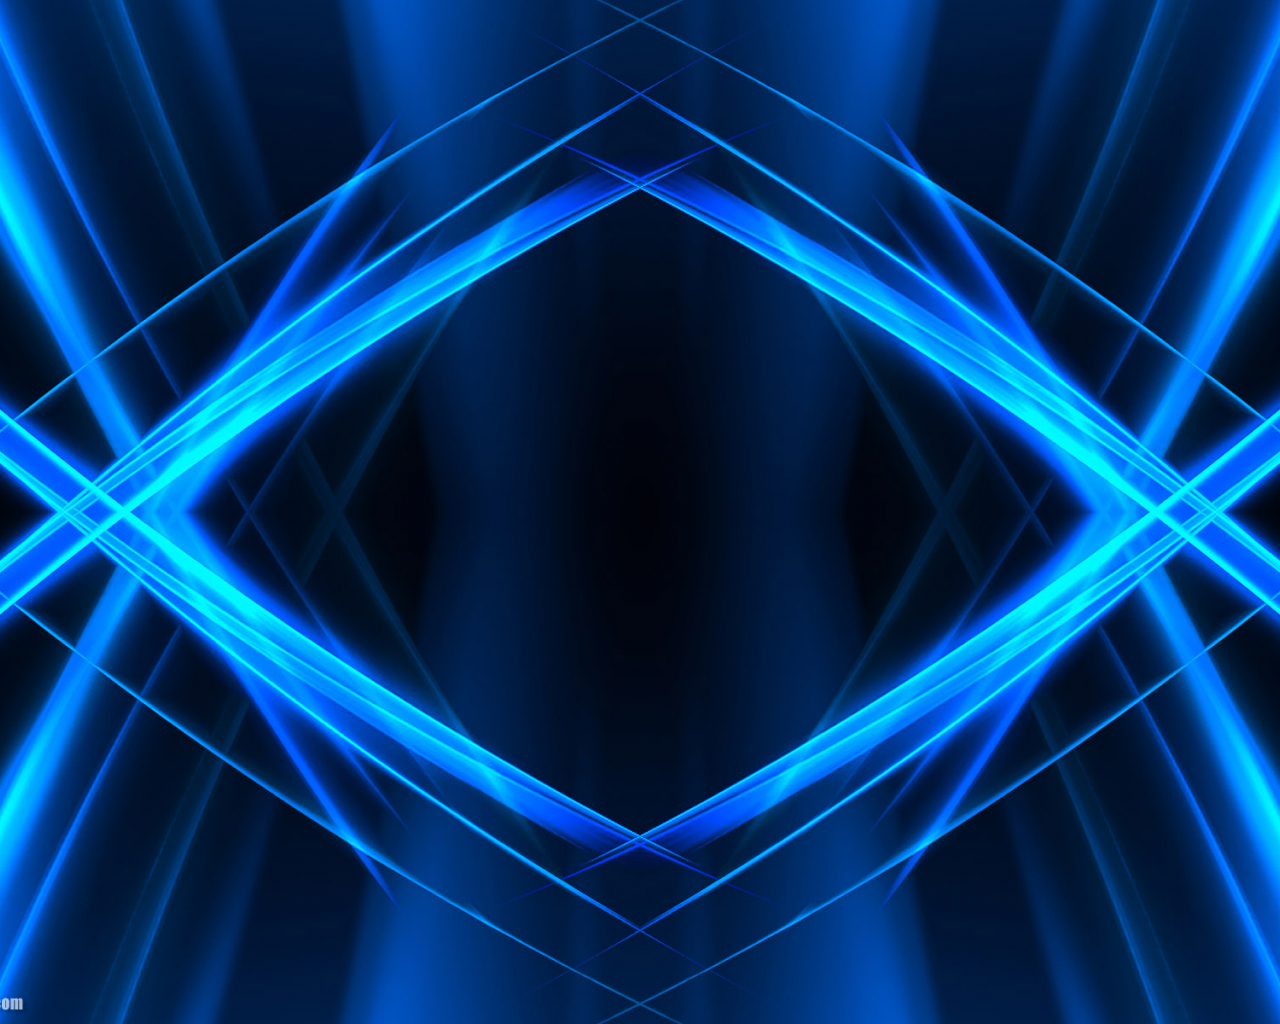 Free Download 25 Beautiful Abstract Blue Wallpapers Hd Abstract Wallpapers 1920x1200 For Your Desktop Mobile Tablet Explore 77 Black And Blue Backgrounds Light Blue Wallpaper Dark Blue Wallpaper Blue Wallpaper